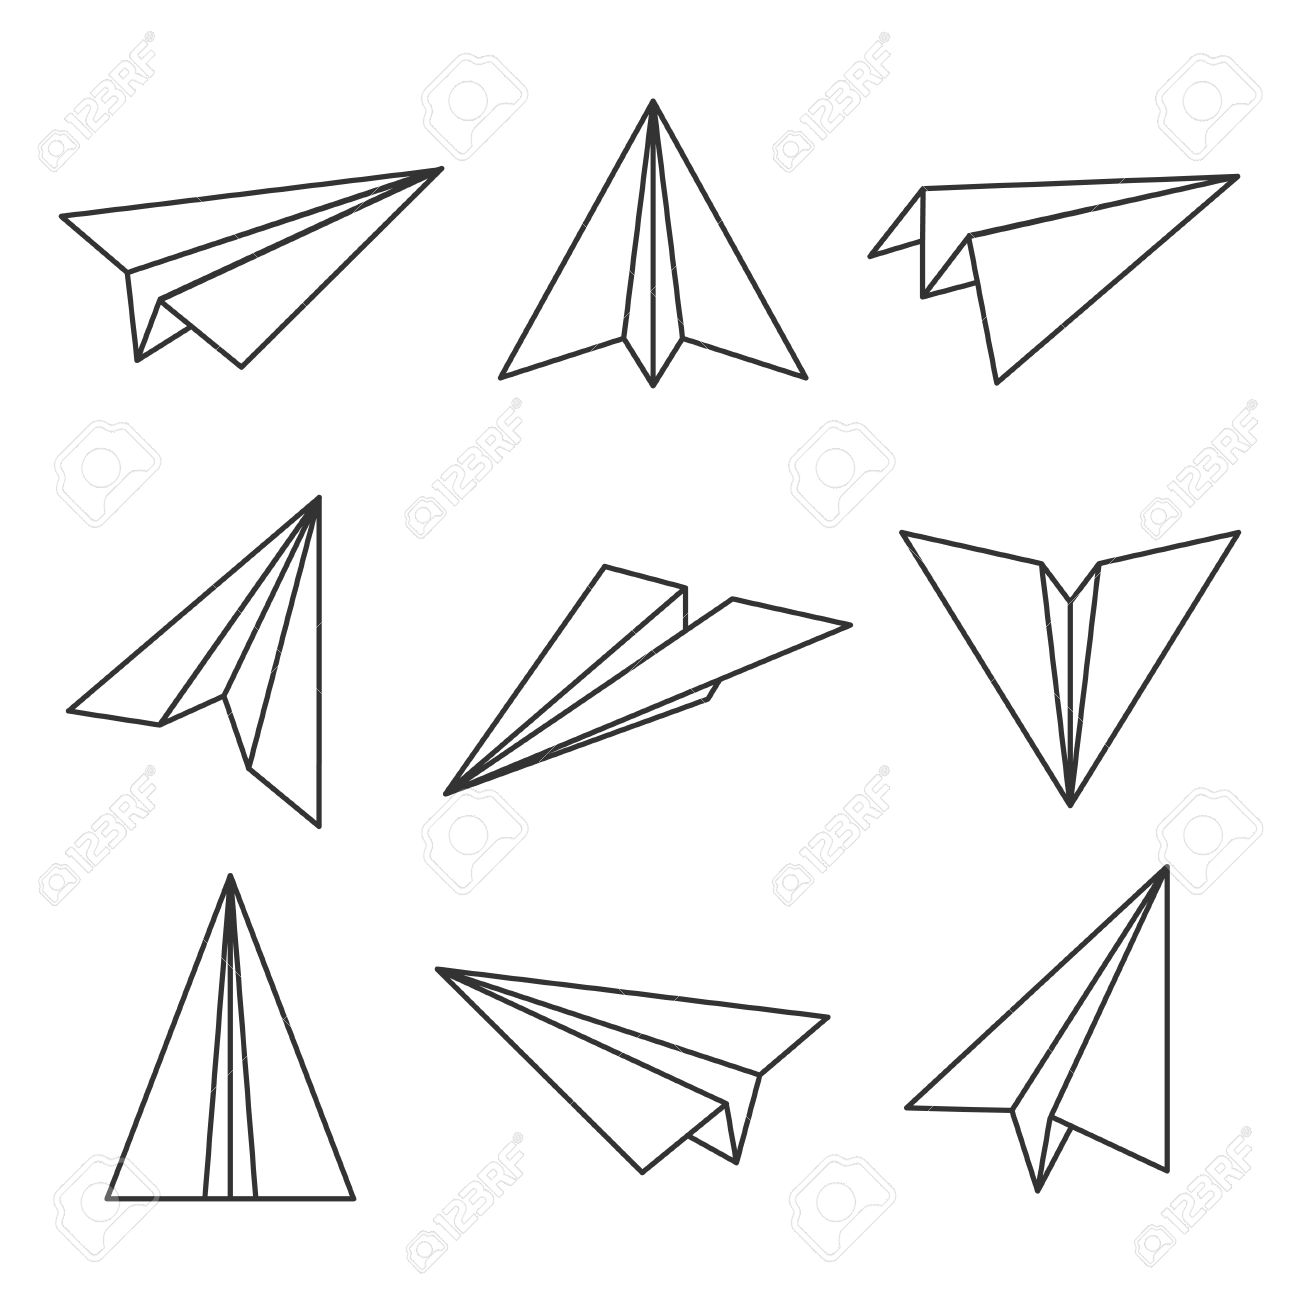 1300x1300 Paper Plane Outline. Glider, Made Out Of Folded Paper, Toy